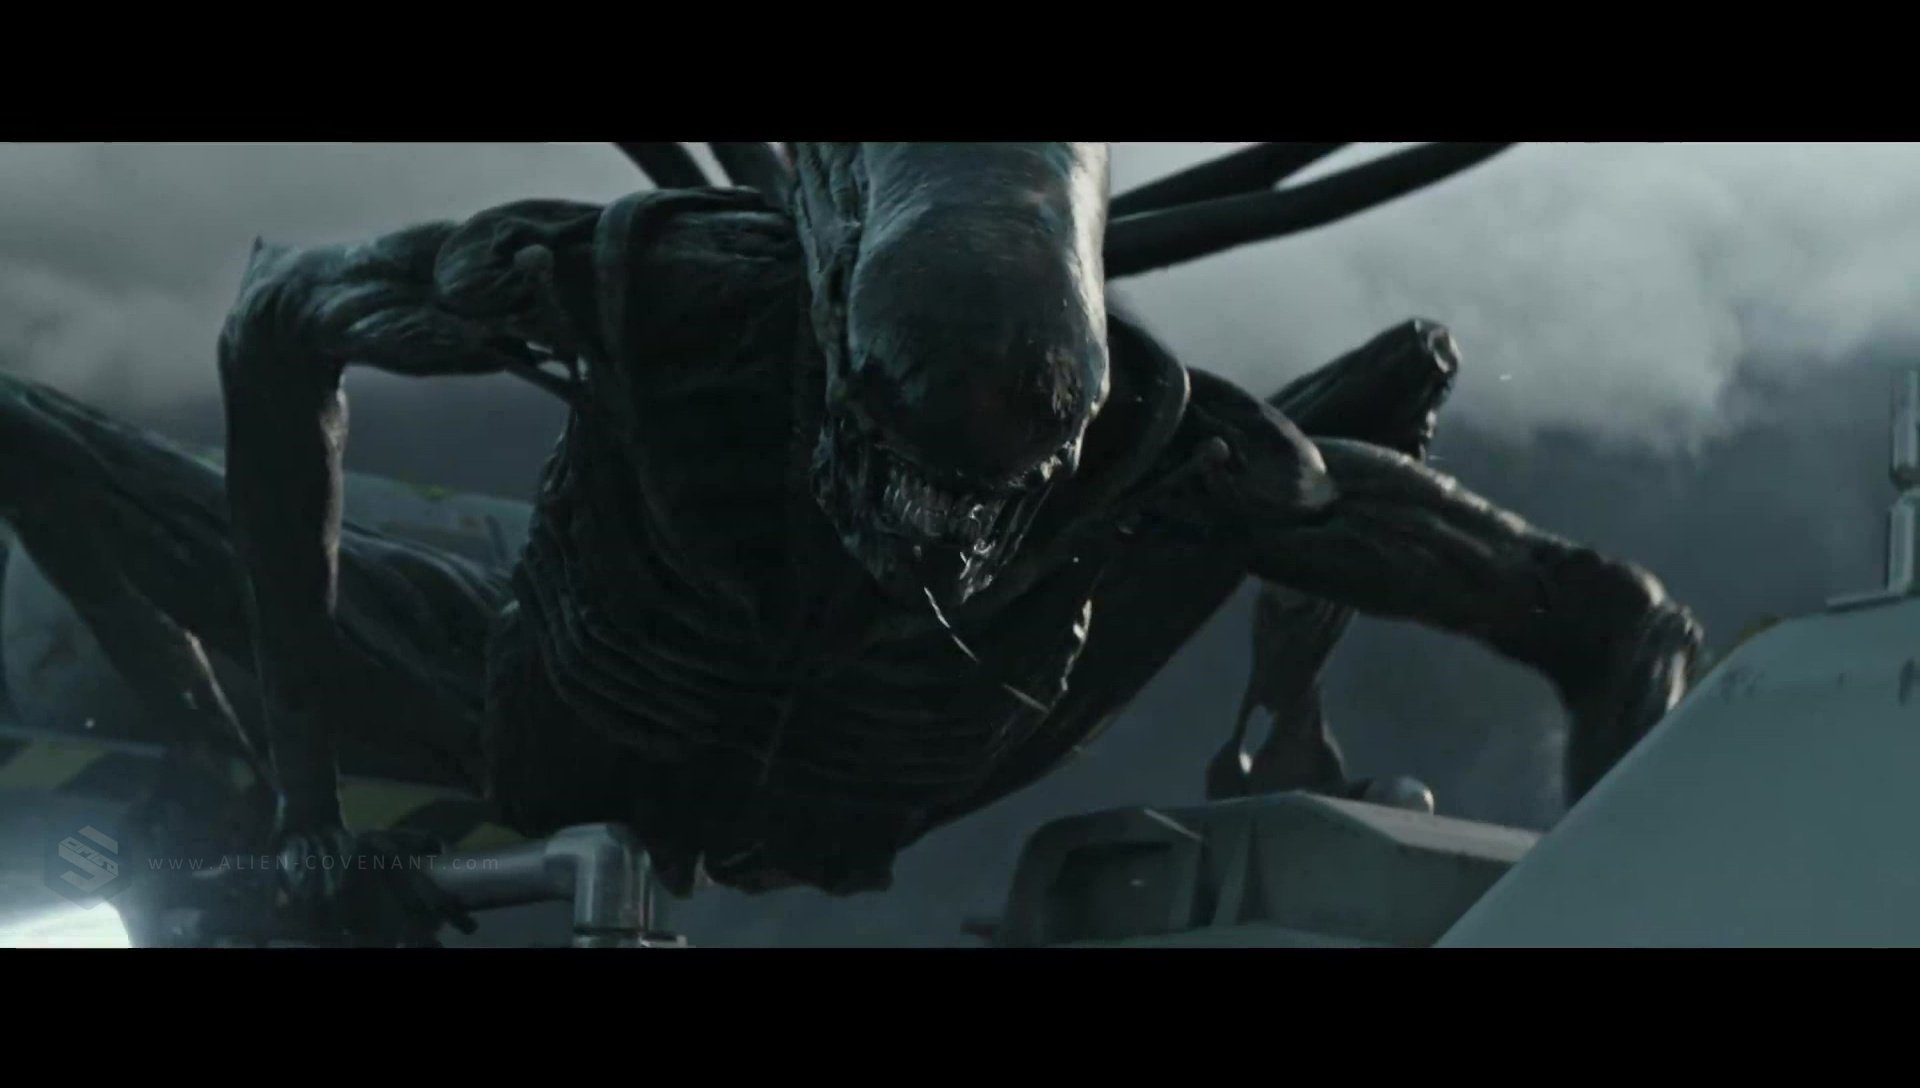 The Alien: Covenant Xenomorph / Protomorph